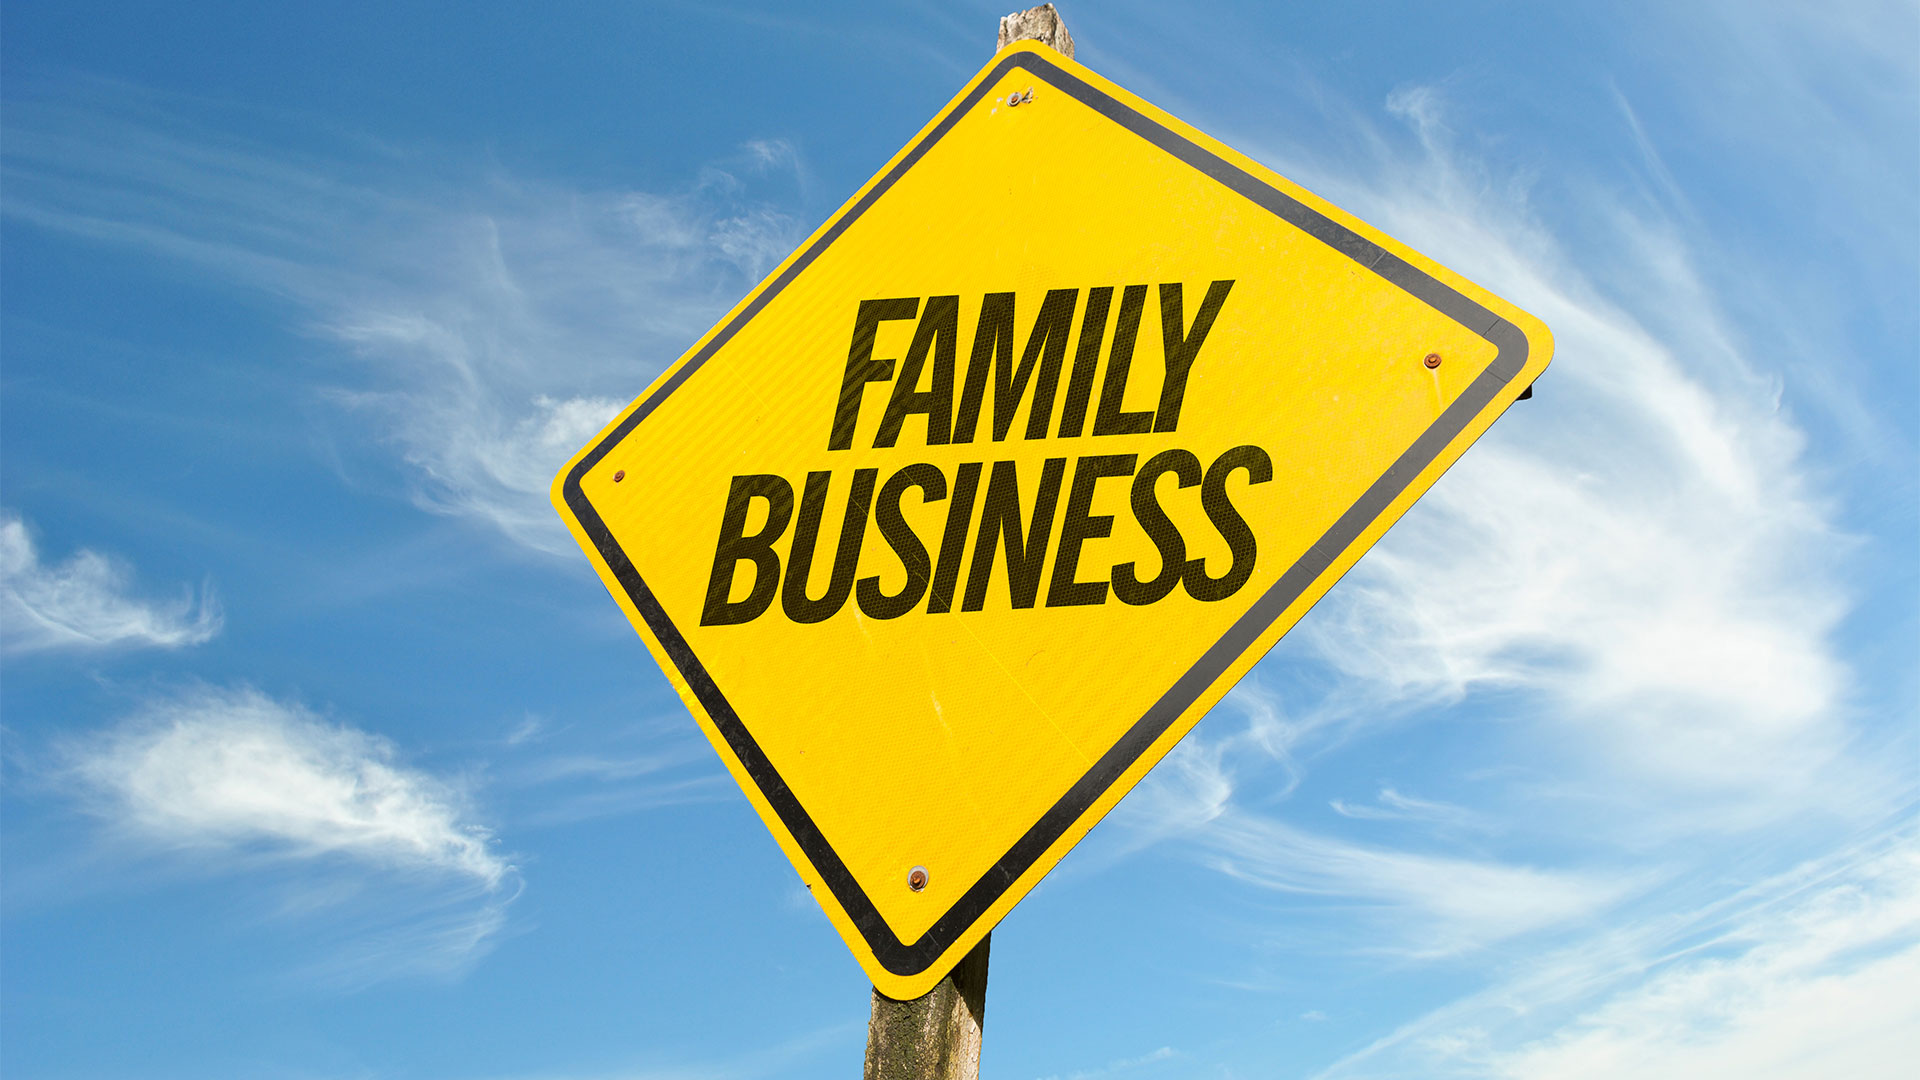 Family Business – The 5 Biggest Issues and How to Solve Them